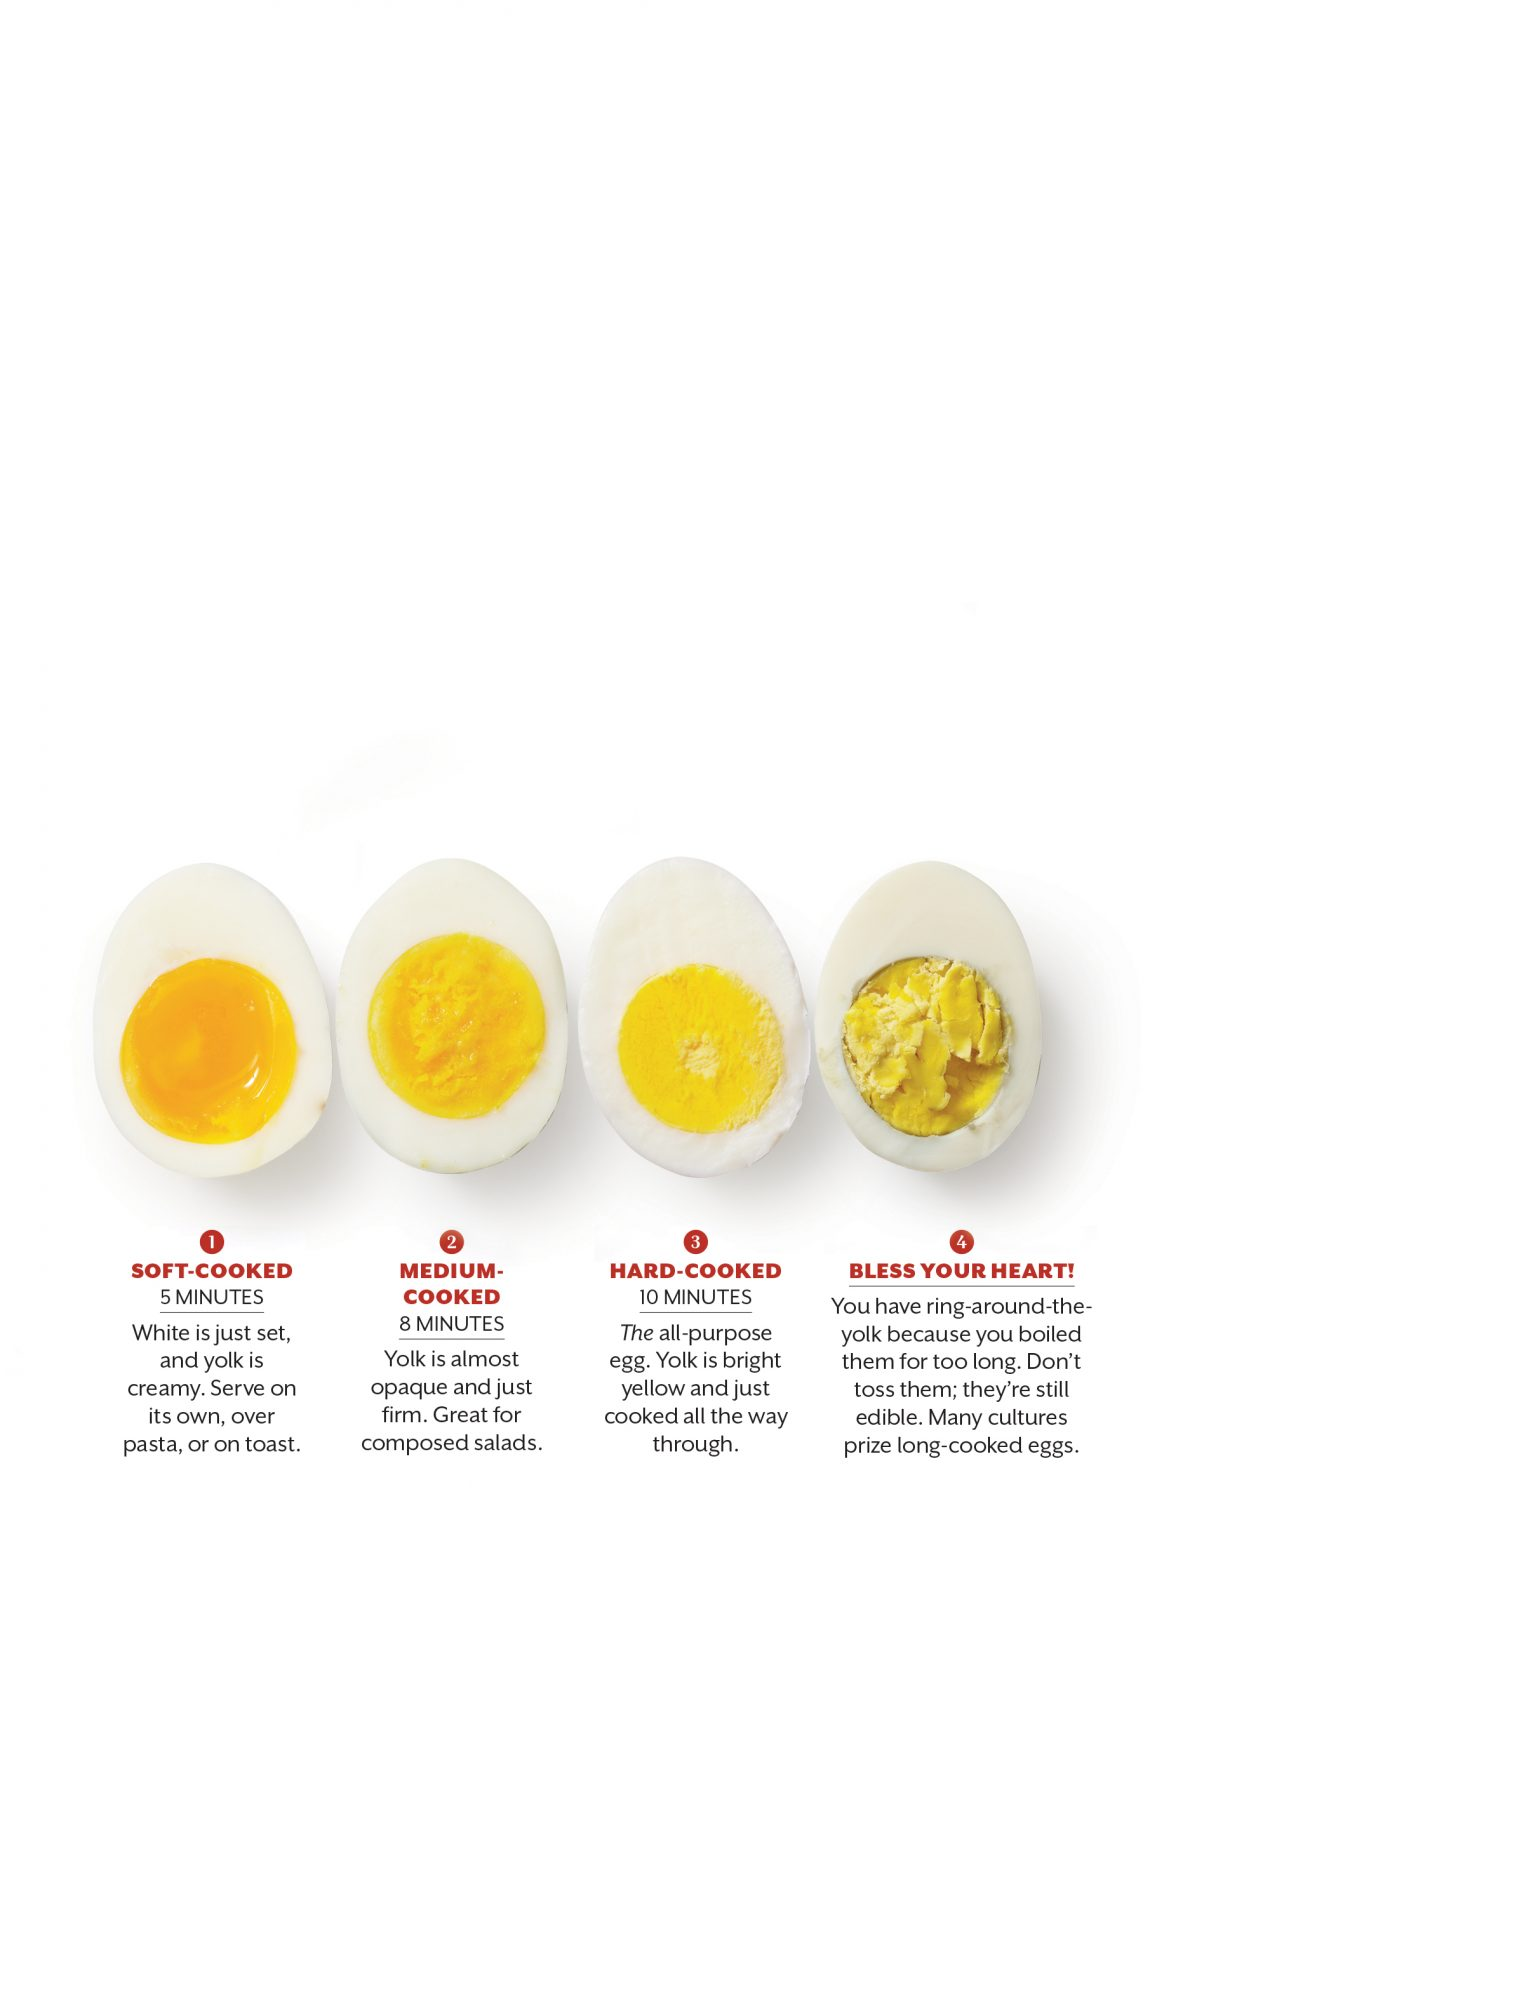 Use Our Tips To Learn How To Boil And Peel Eggs So That Theye Out  Perfectly Every Time